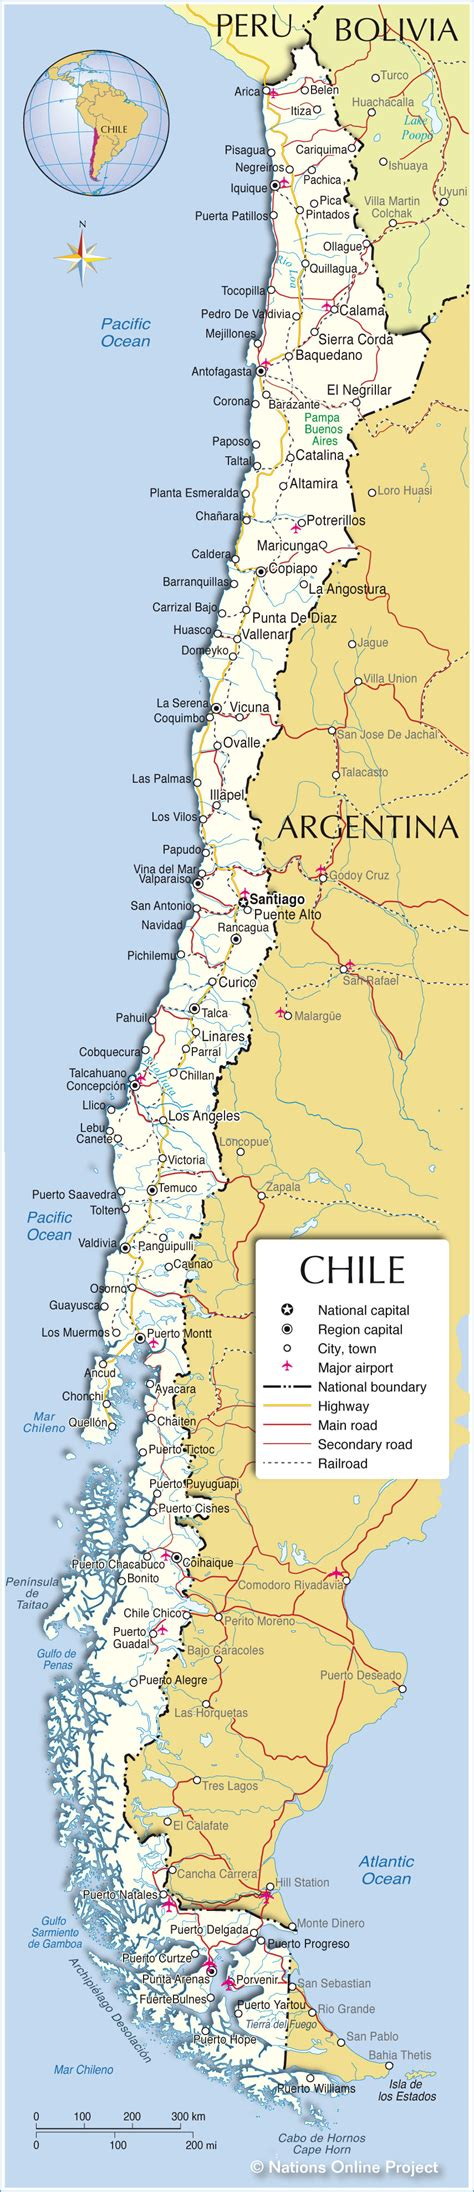 chile political map political map of chile nations project